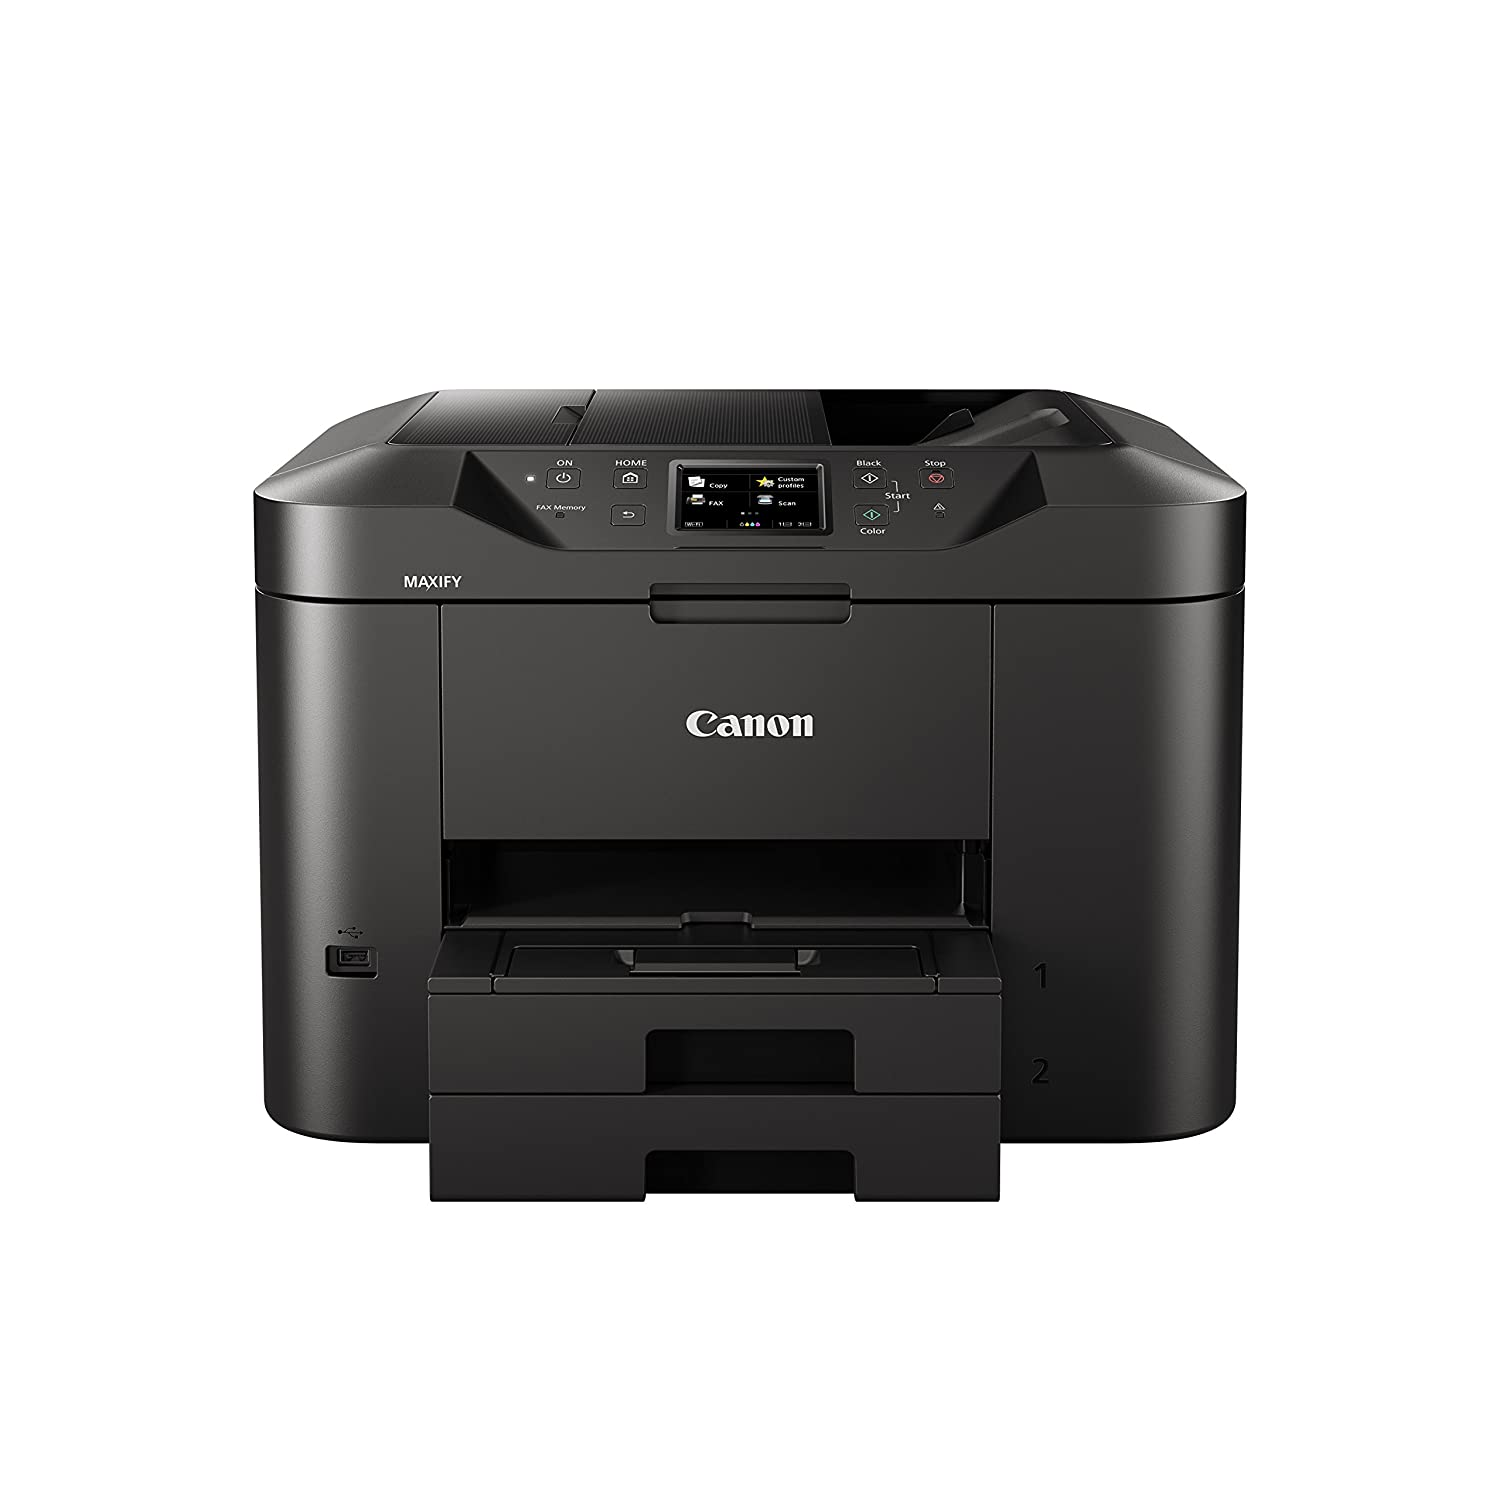 Canon MAXIFY MB2720 Wireless Color Printer with Scanner, Copier ...